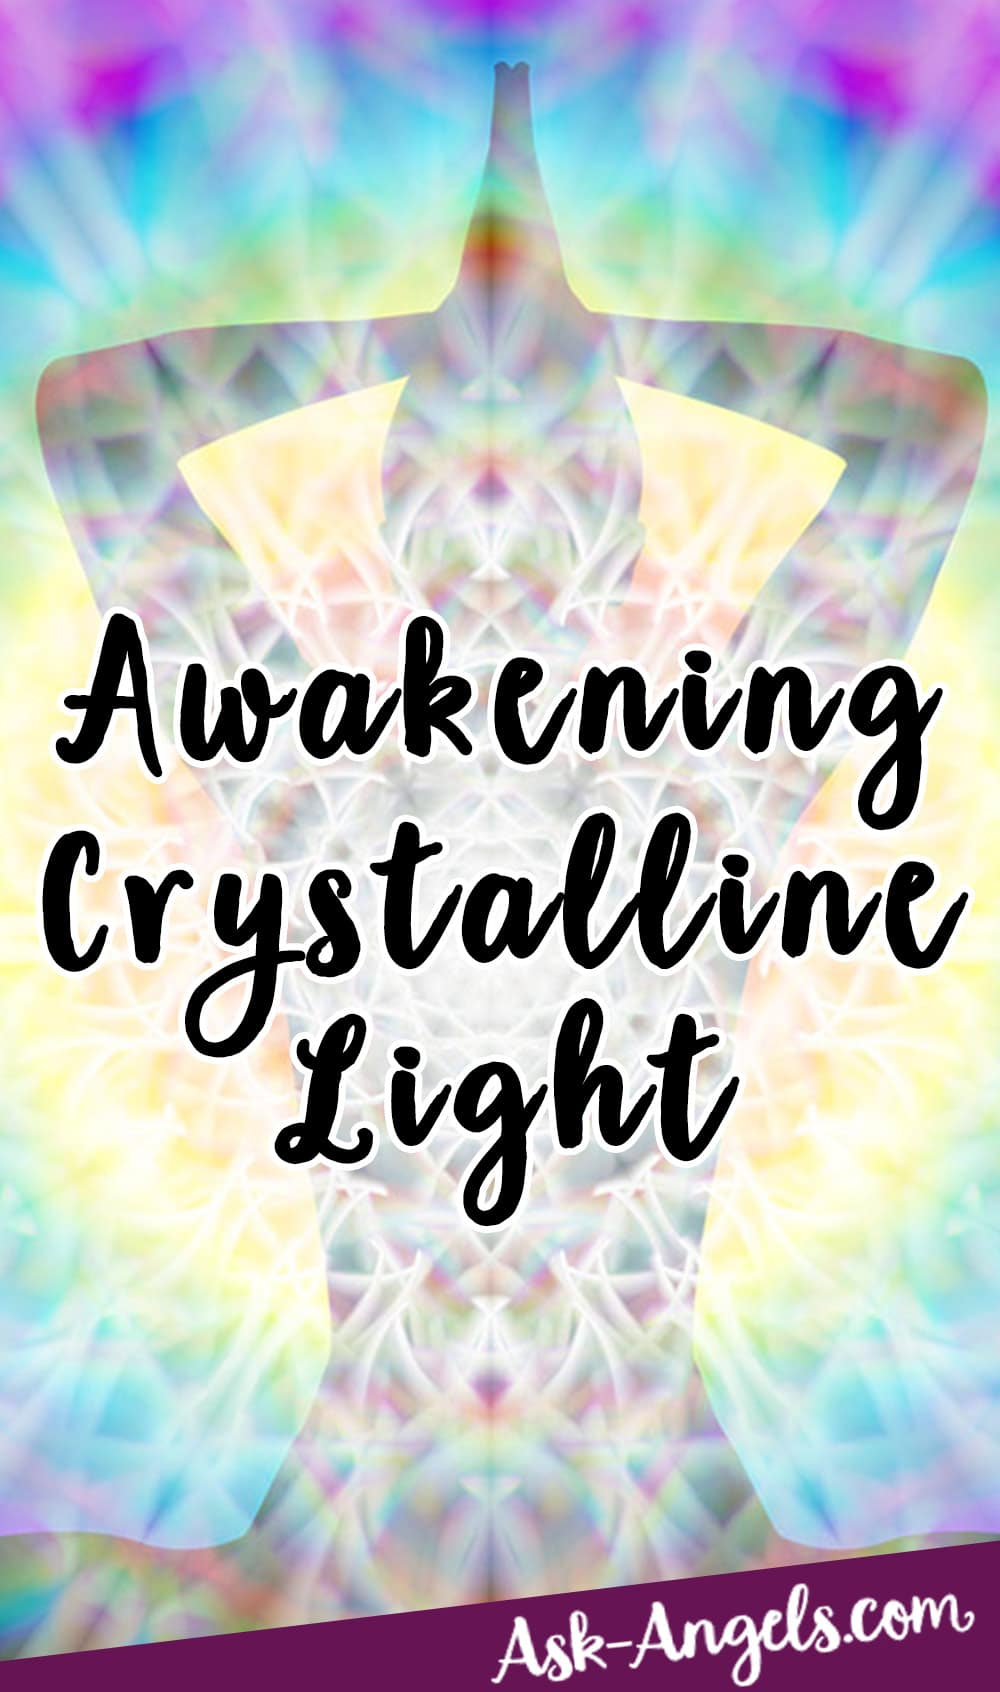 Awakening Crystalline Light